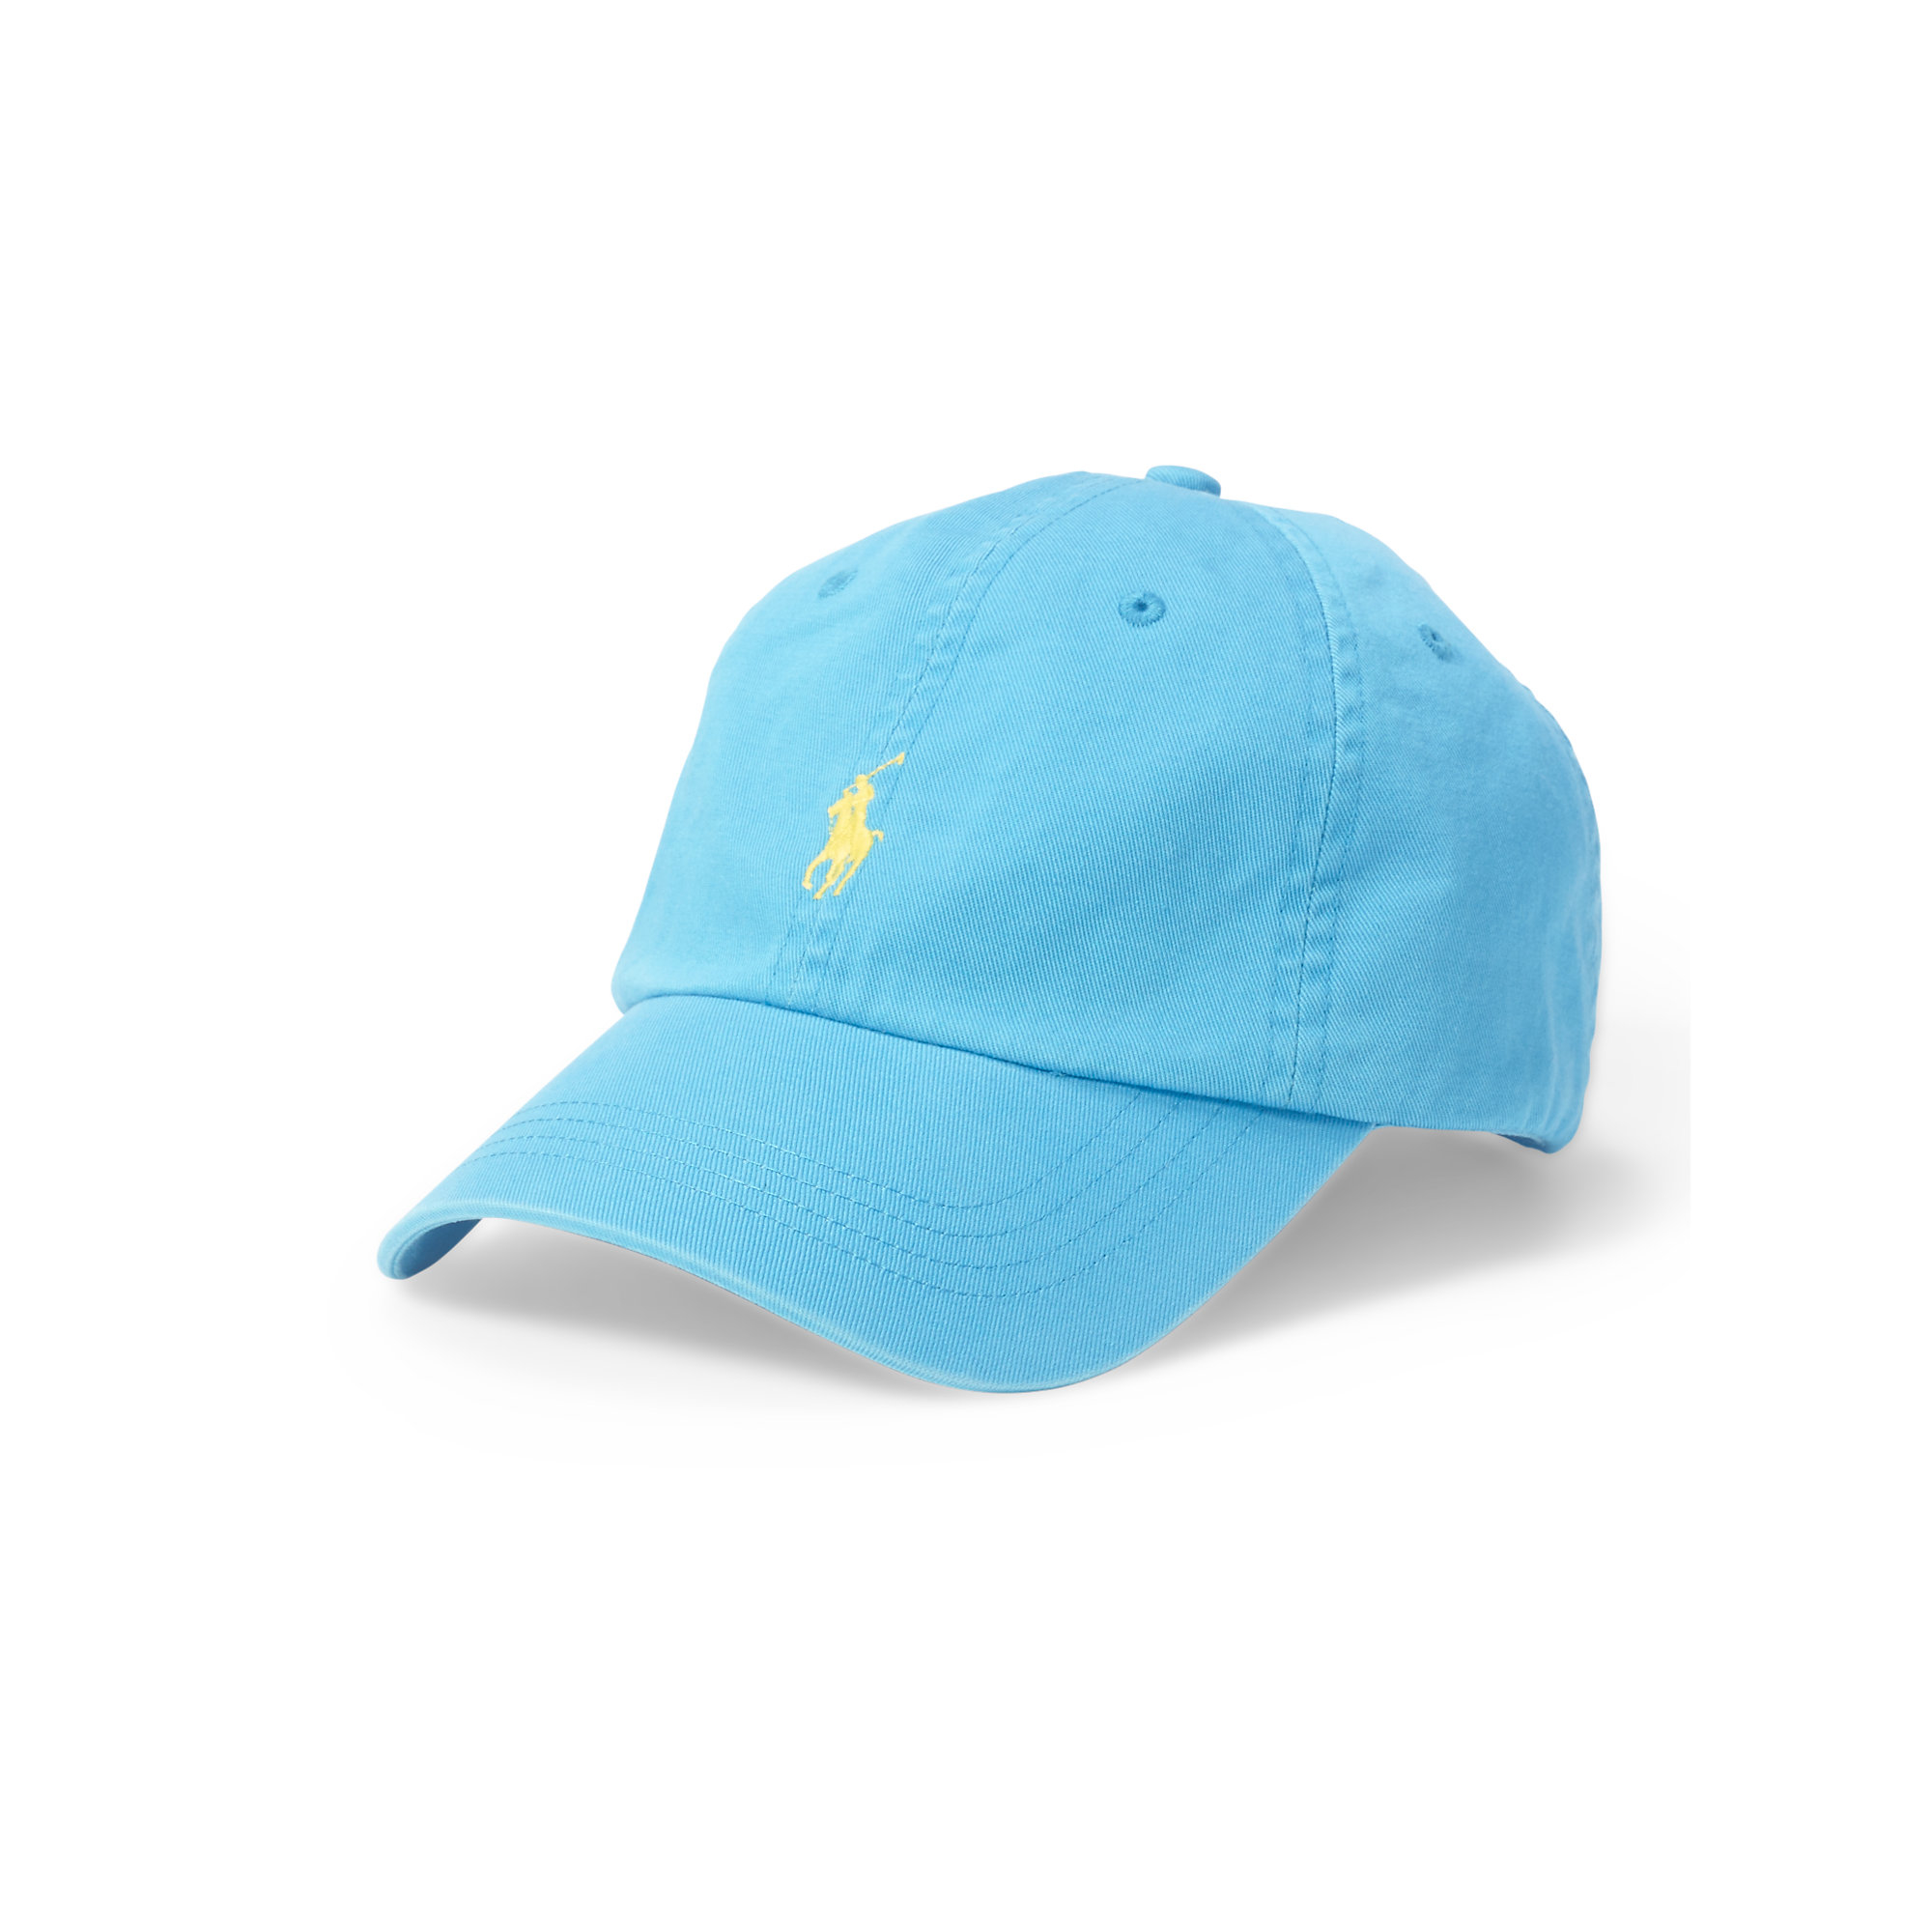 Lyst Polo Ralph Lauren Cotton Chino Baseball Cap In Blue For Men 1ae1afce8afb